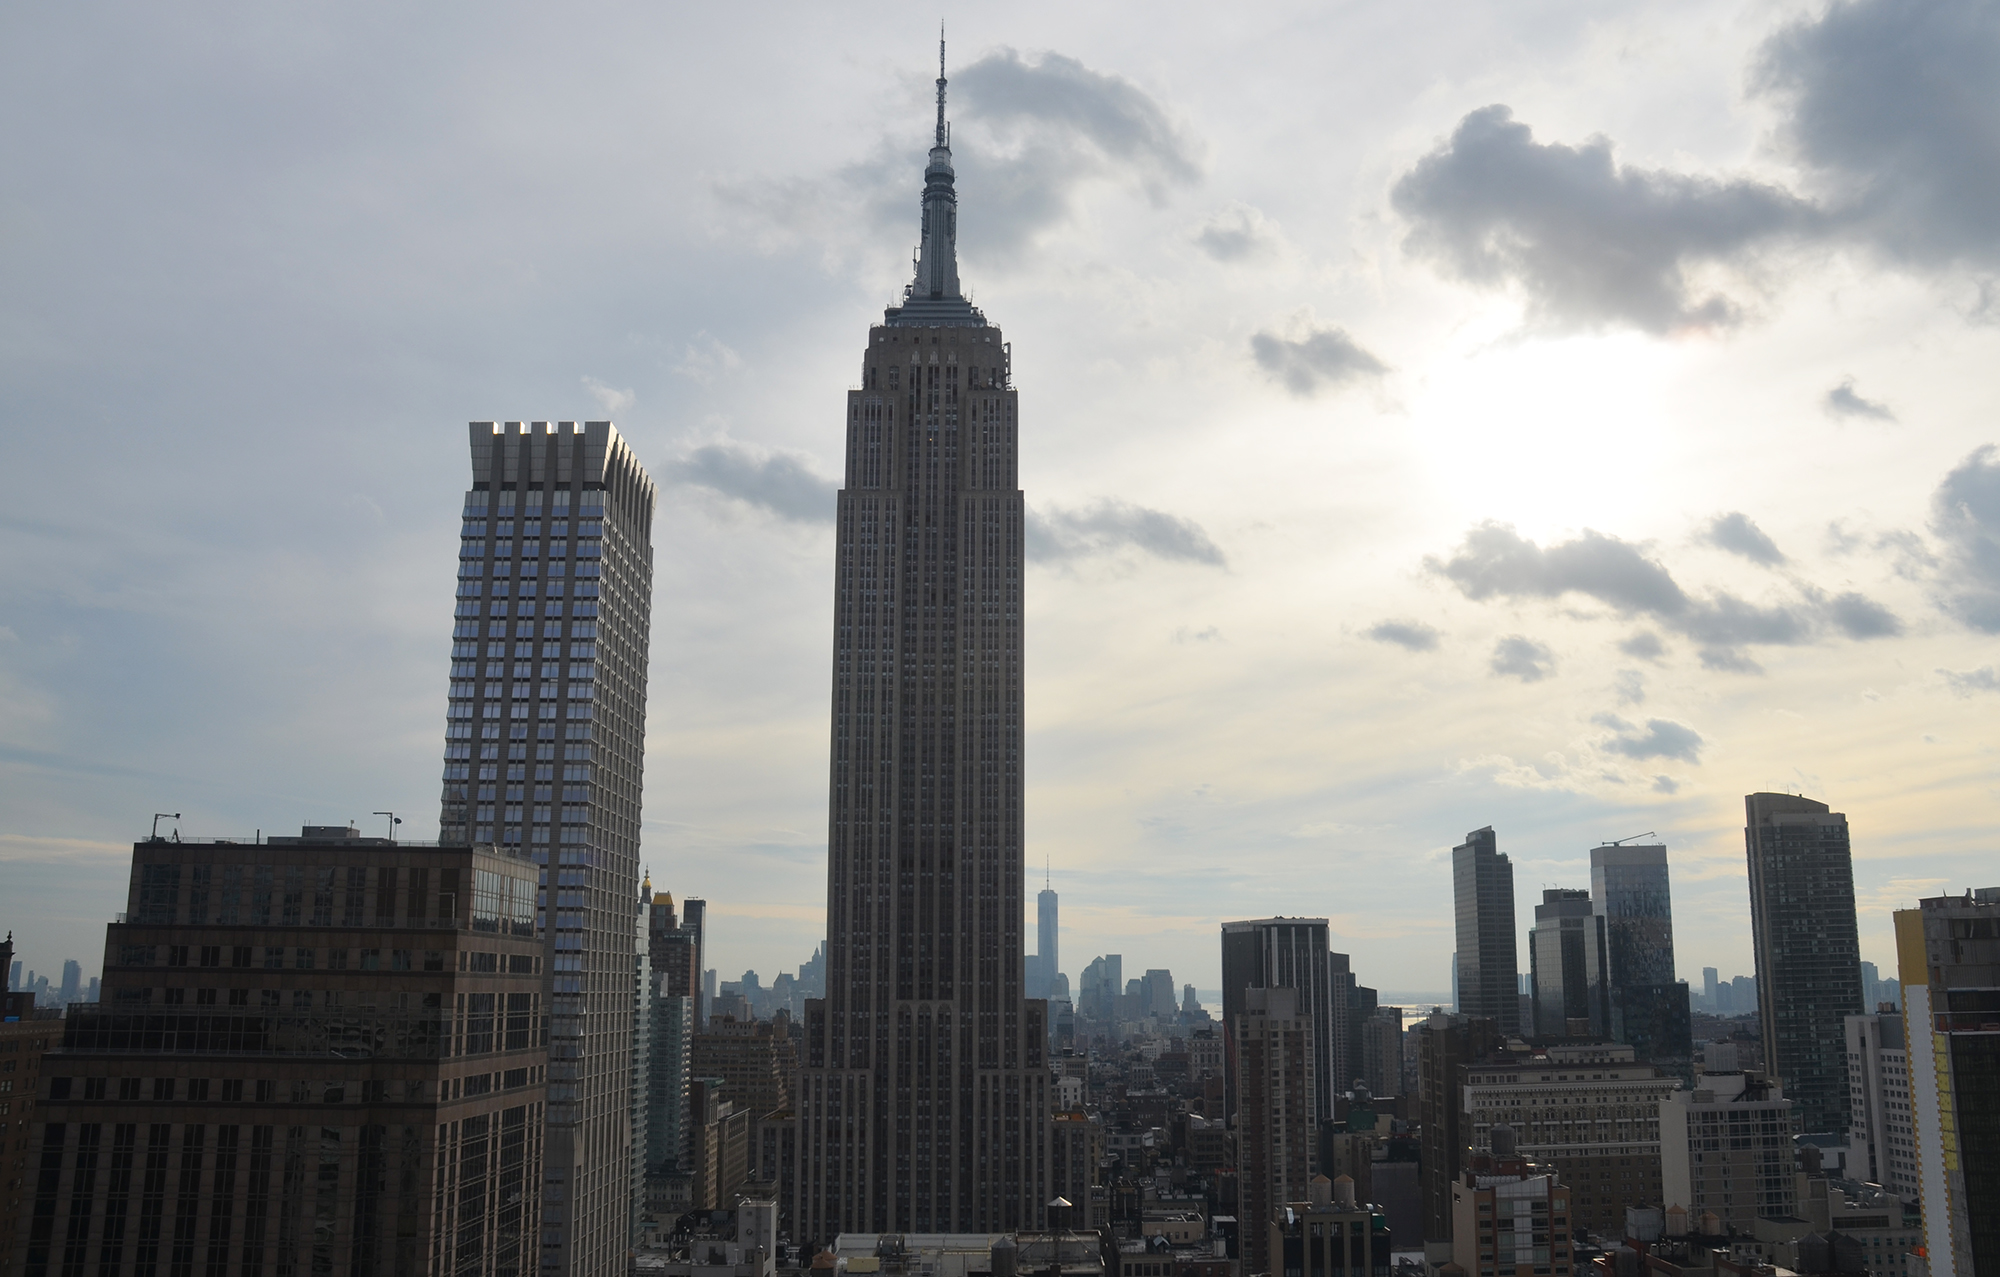 The Empire State Building as seen from the top of The Bryant. All photos by Evan Bindelglass unless noted